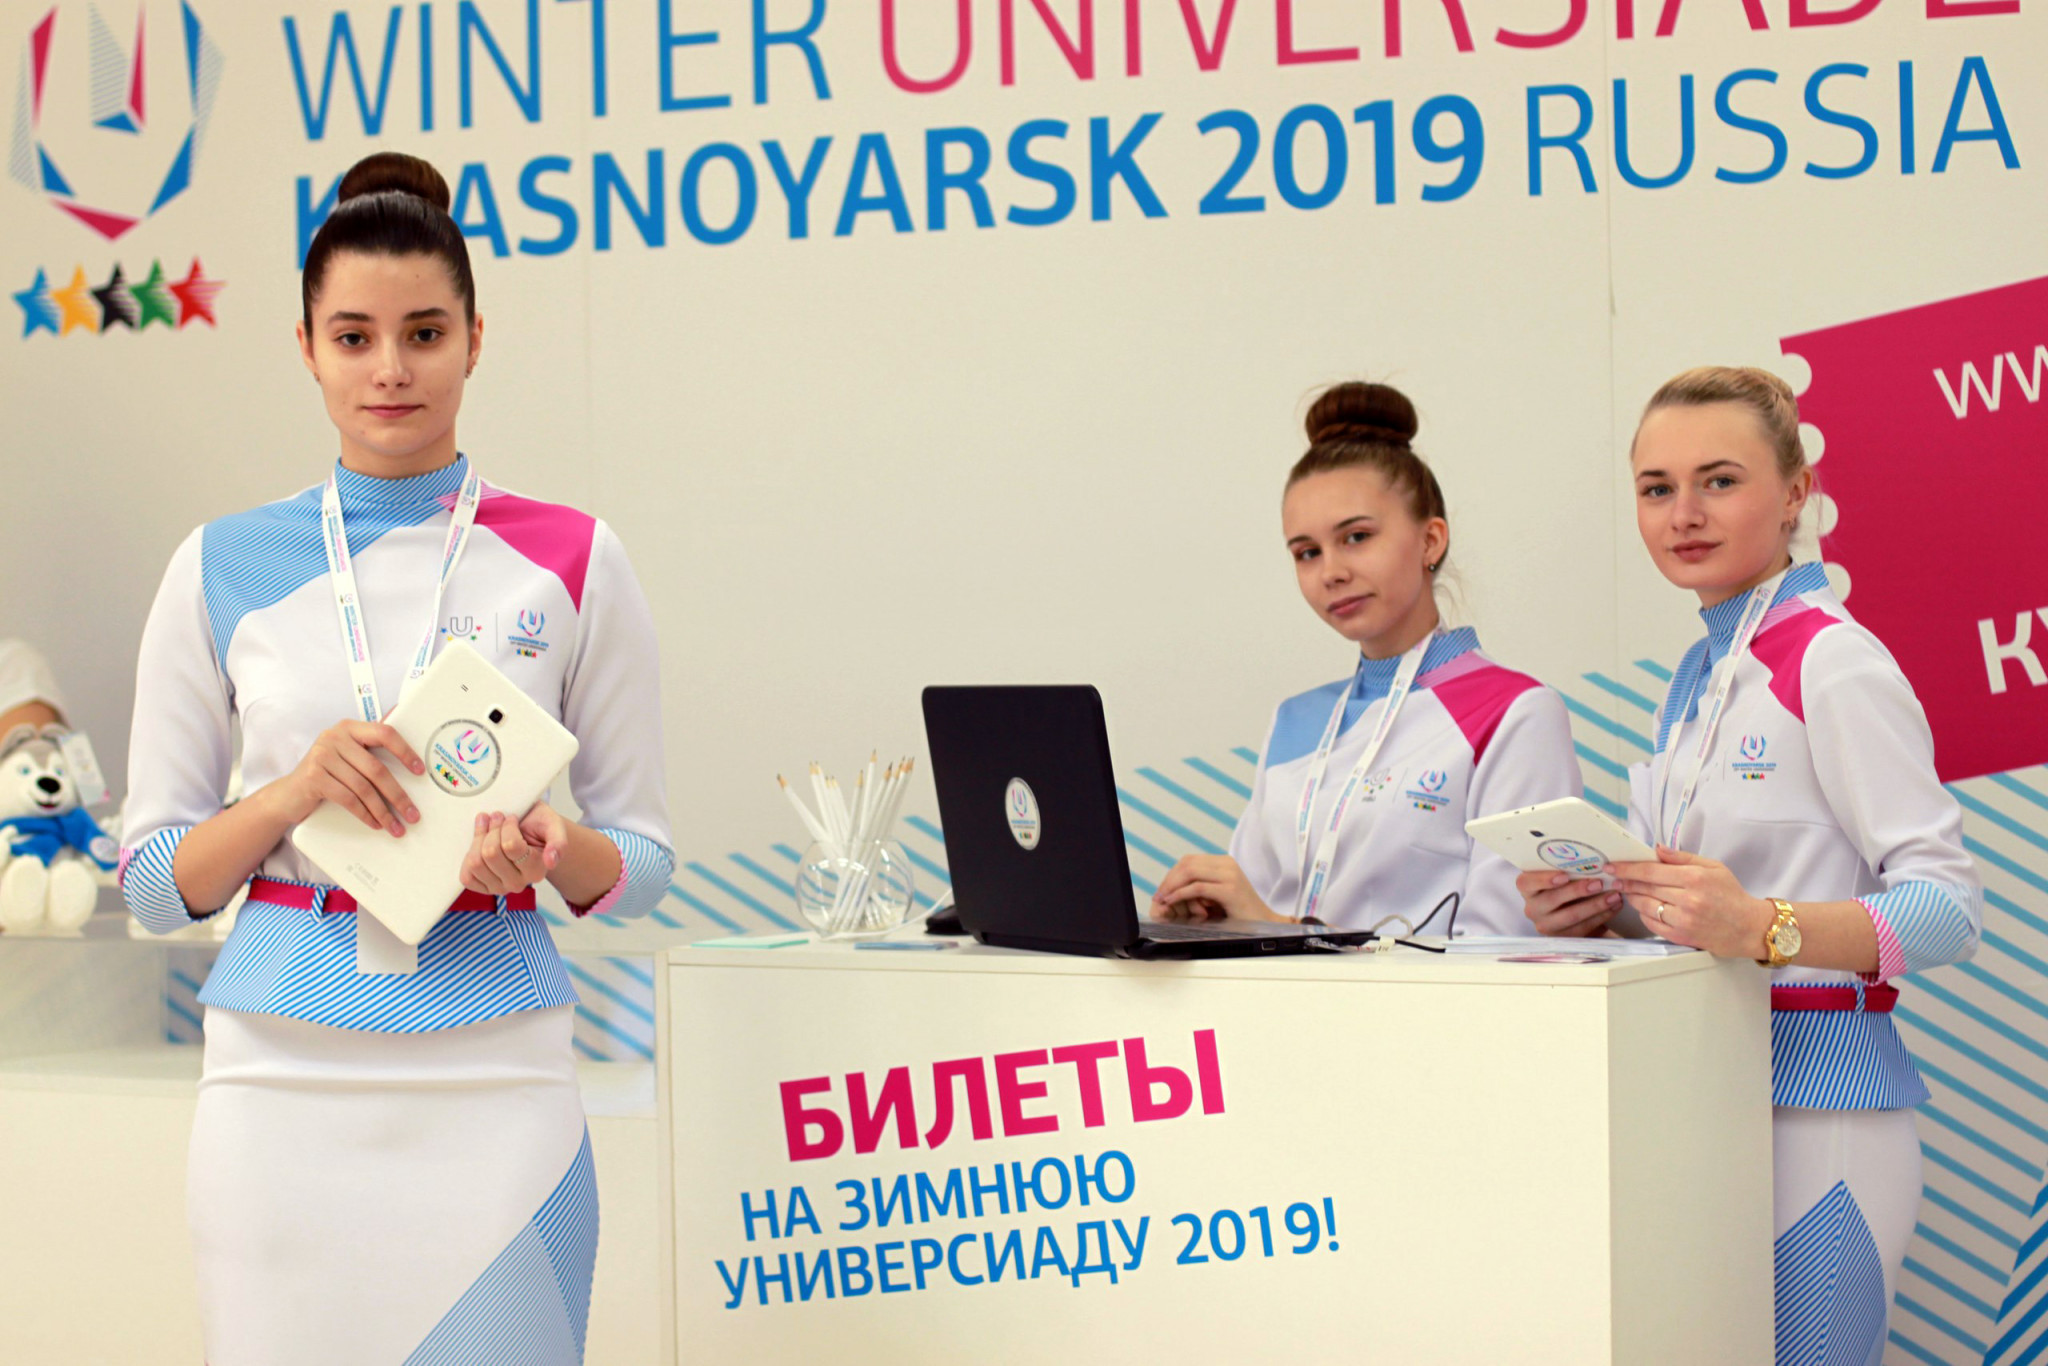 More than 50 per cent of tickets sold for Krasnoyarsk 2019